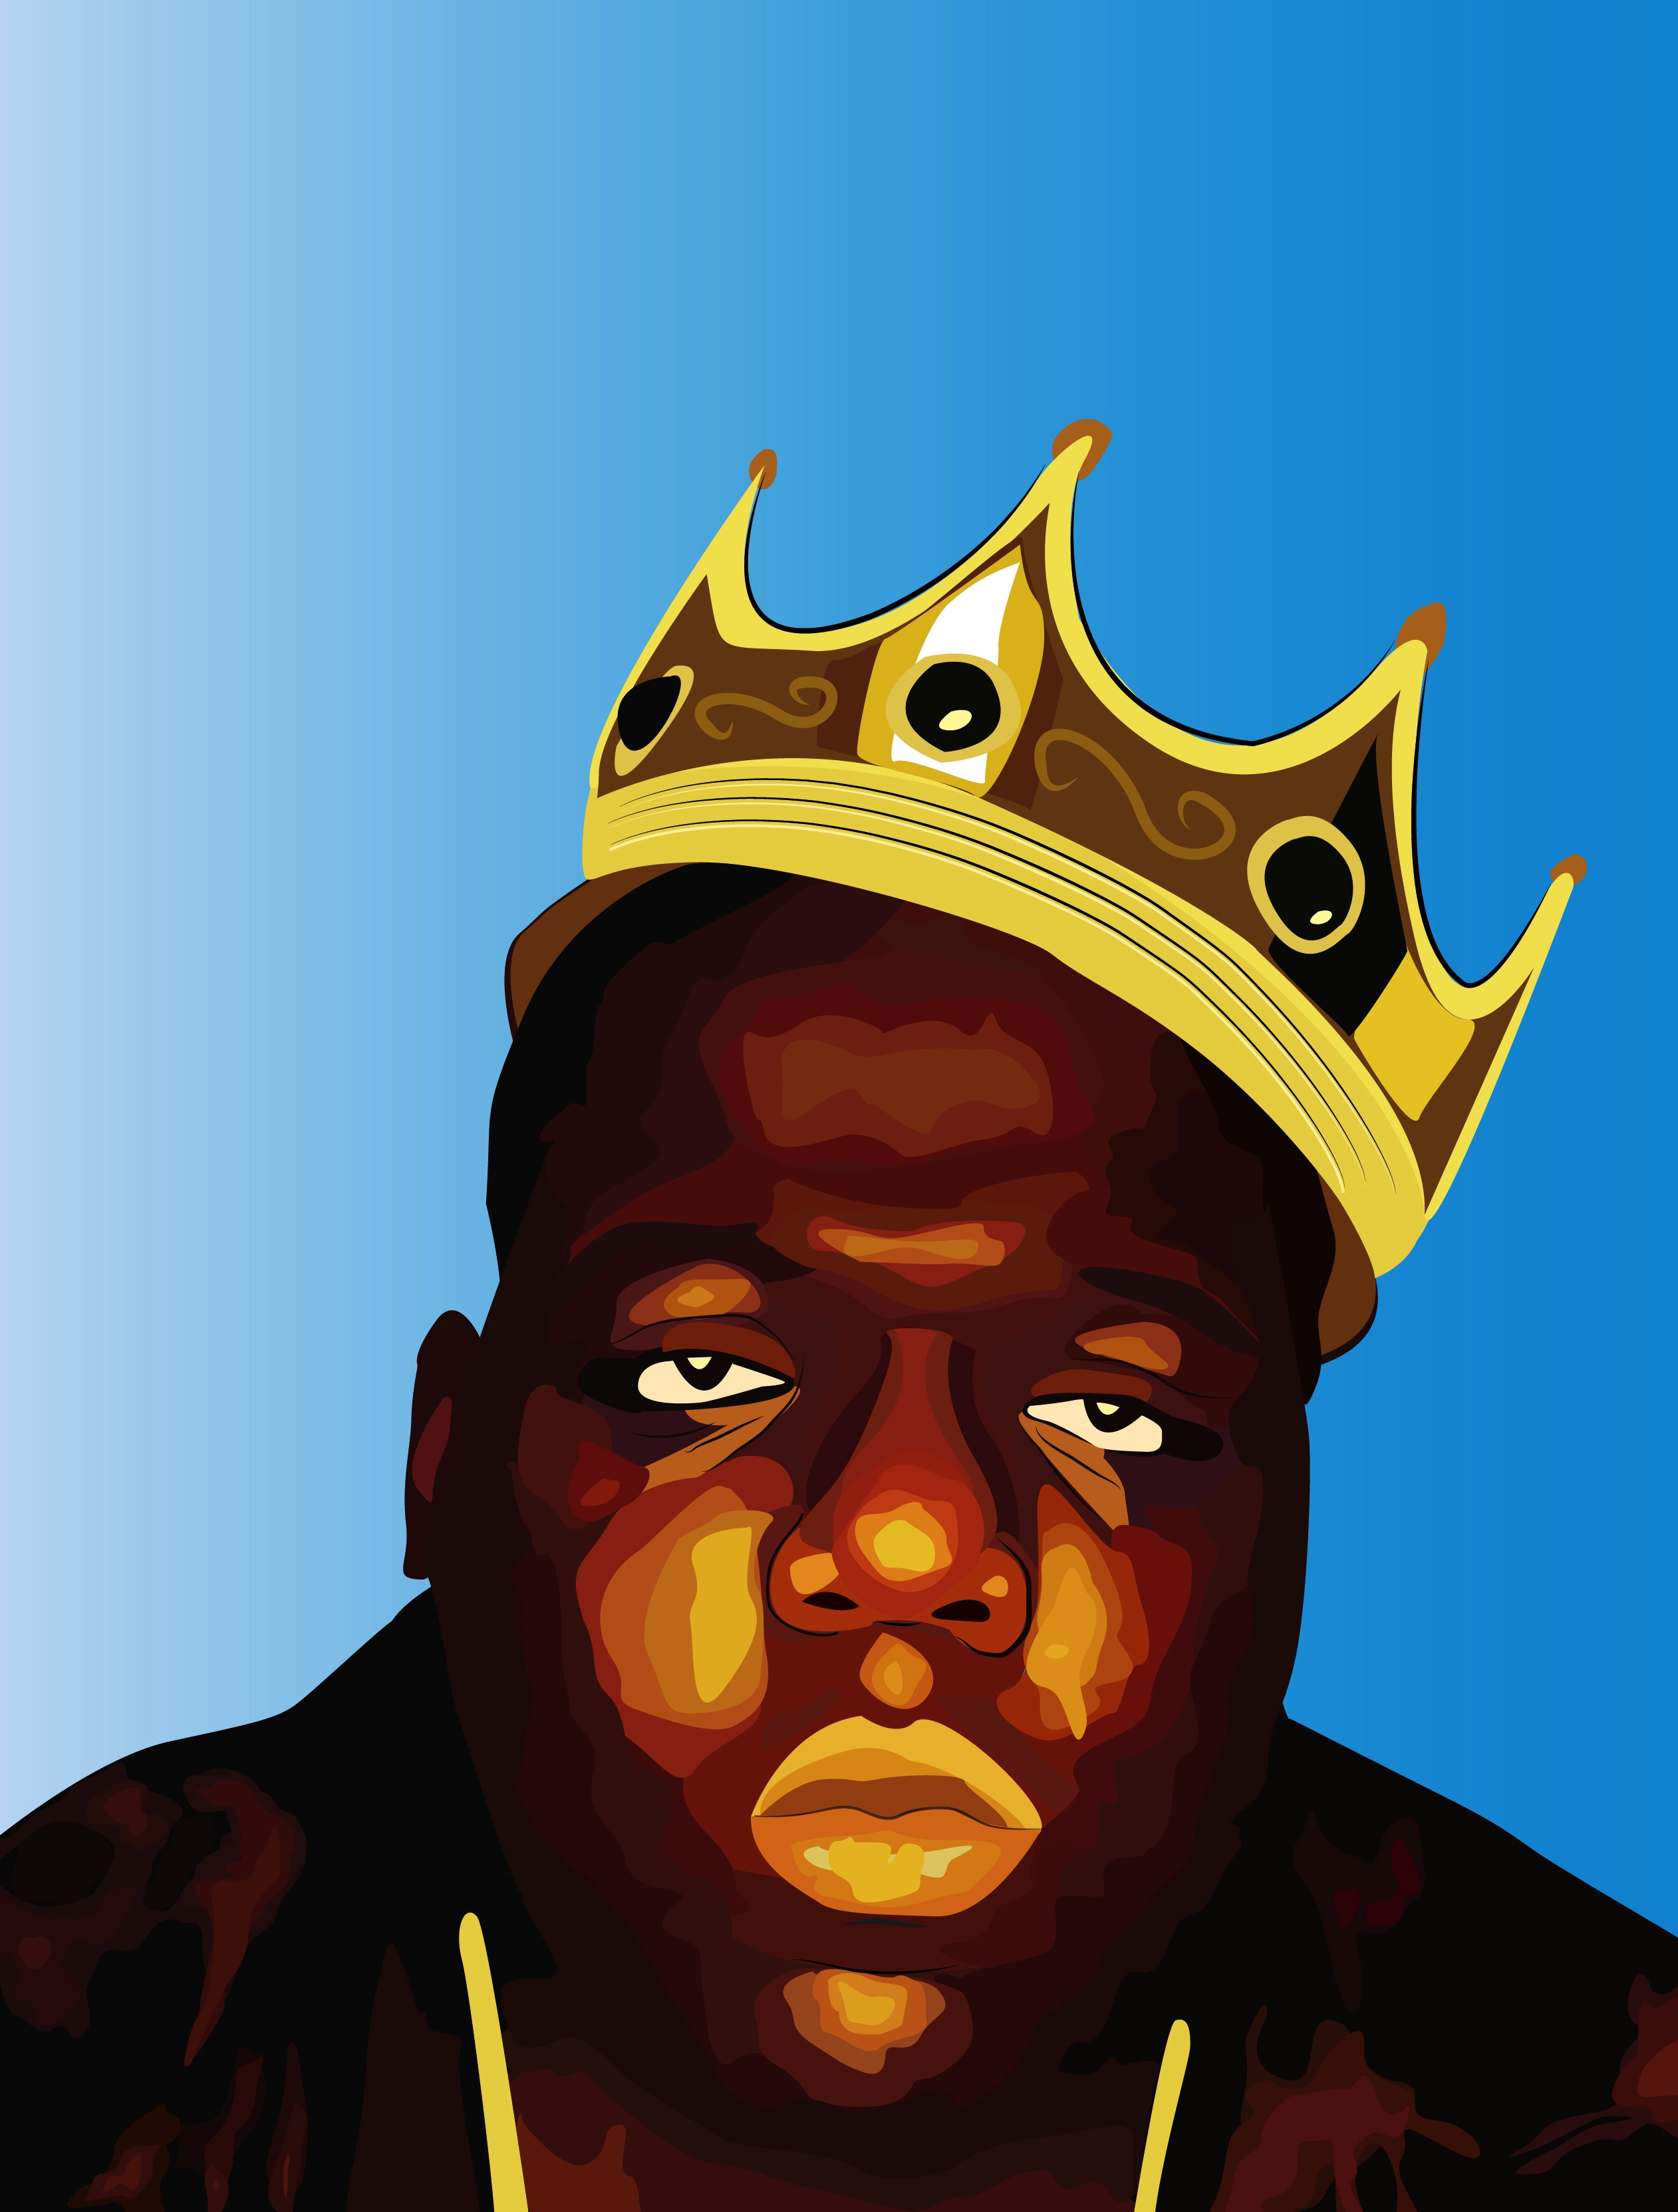 14 Biggie Smalls Vector Images Notorious Big Biggie Smalls Art Drawing Biggie Smalls Black And White And Biggie Small Black And White Vector Newdesignfile Com Funko pop rapper notorious b.i.g biggie smalls with crown figure unboxing review 2018 here is a link to this amazing figure of the late great biggie. newdesignfile com